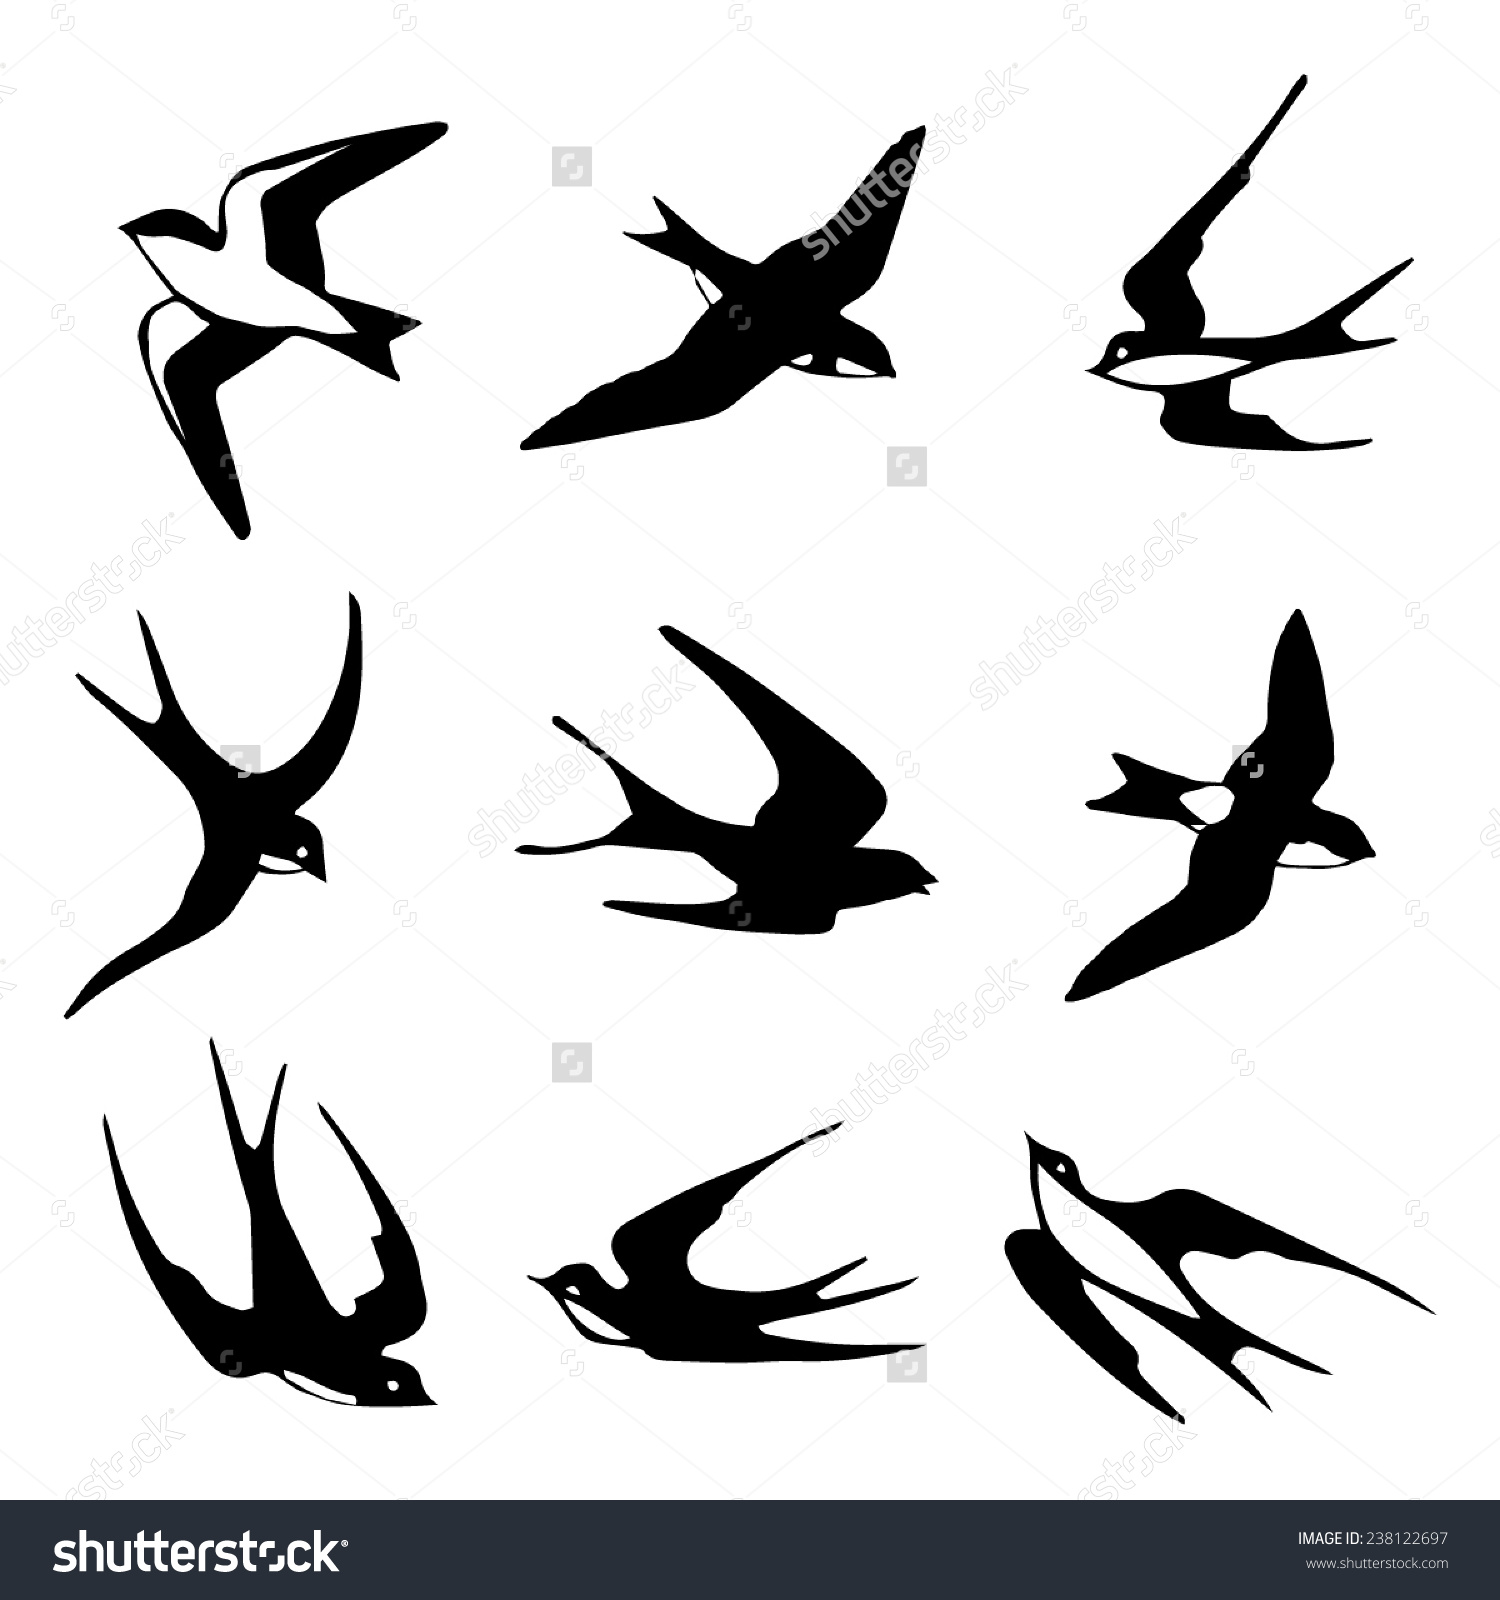 Set Black Isolated Vector Silhouettes Birds Stock Vector 238122697.